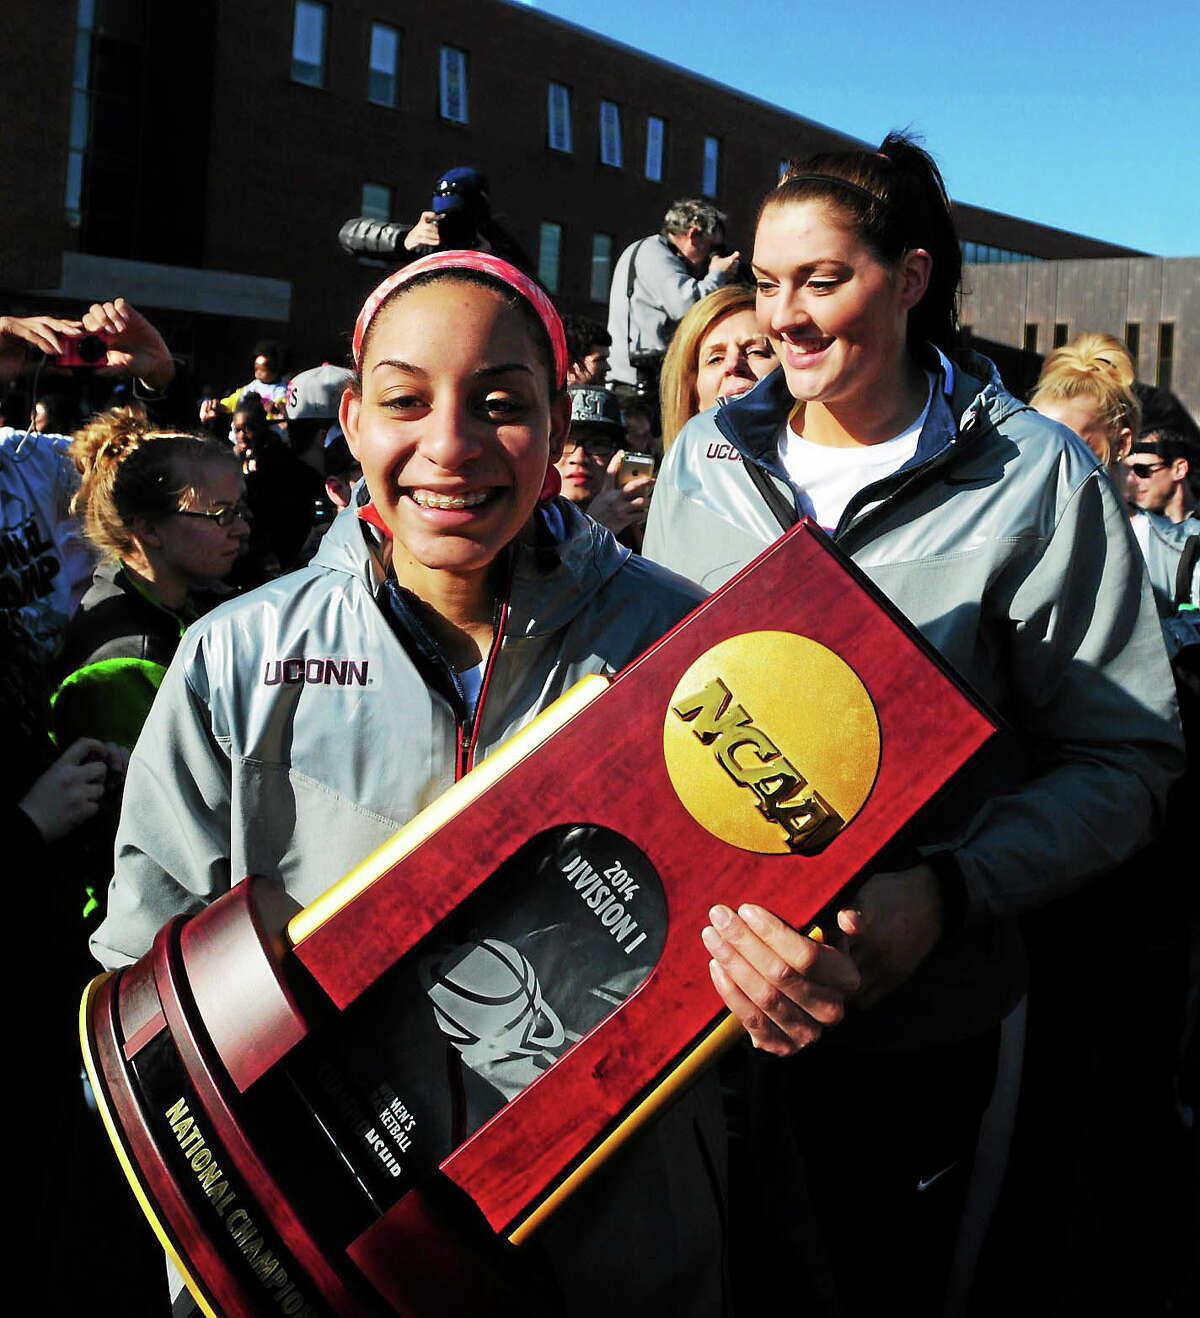 UConn guard Bria Hartley, left, carries the NCAA women's national championship trophy at the victory rally at Storrs. Stefanie Dolson is behind her. Peter Hvizdak - New Haven Register